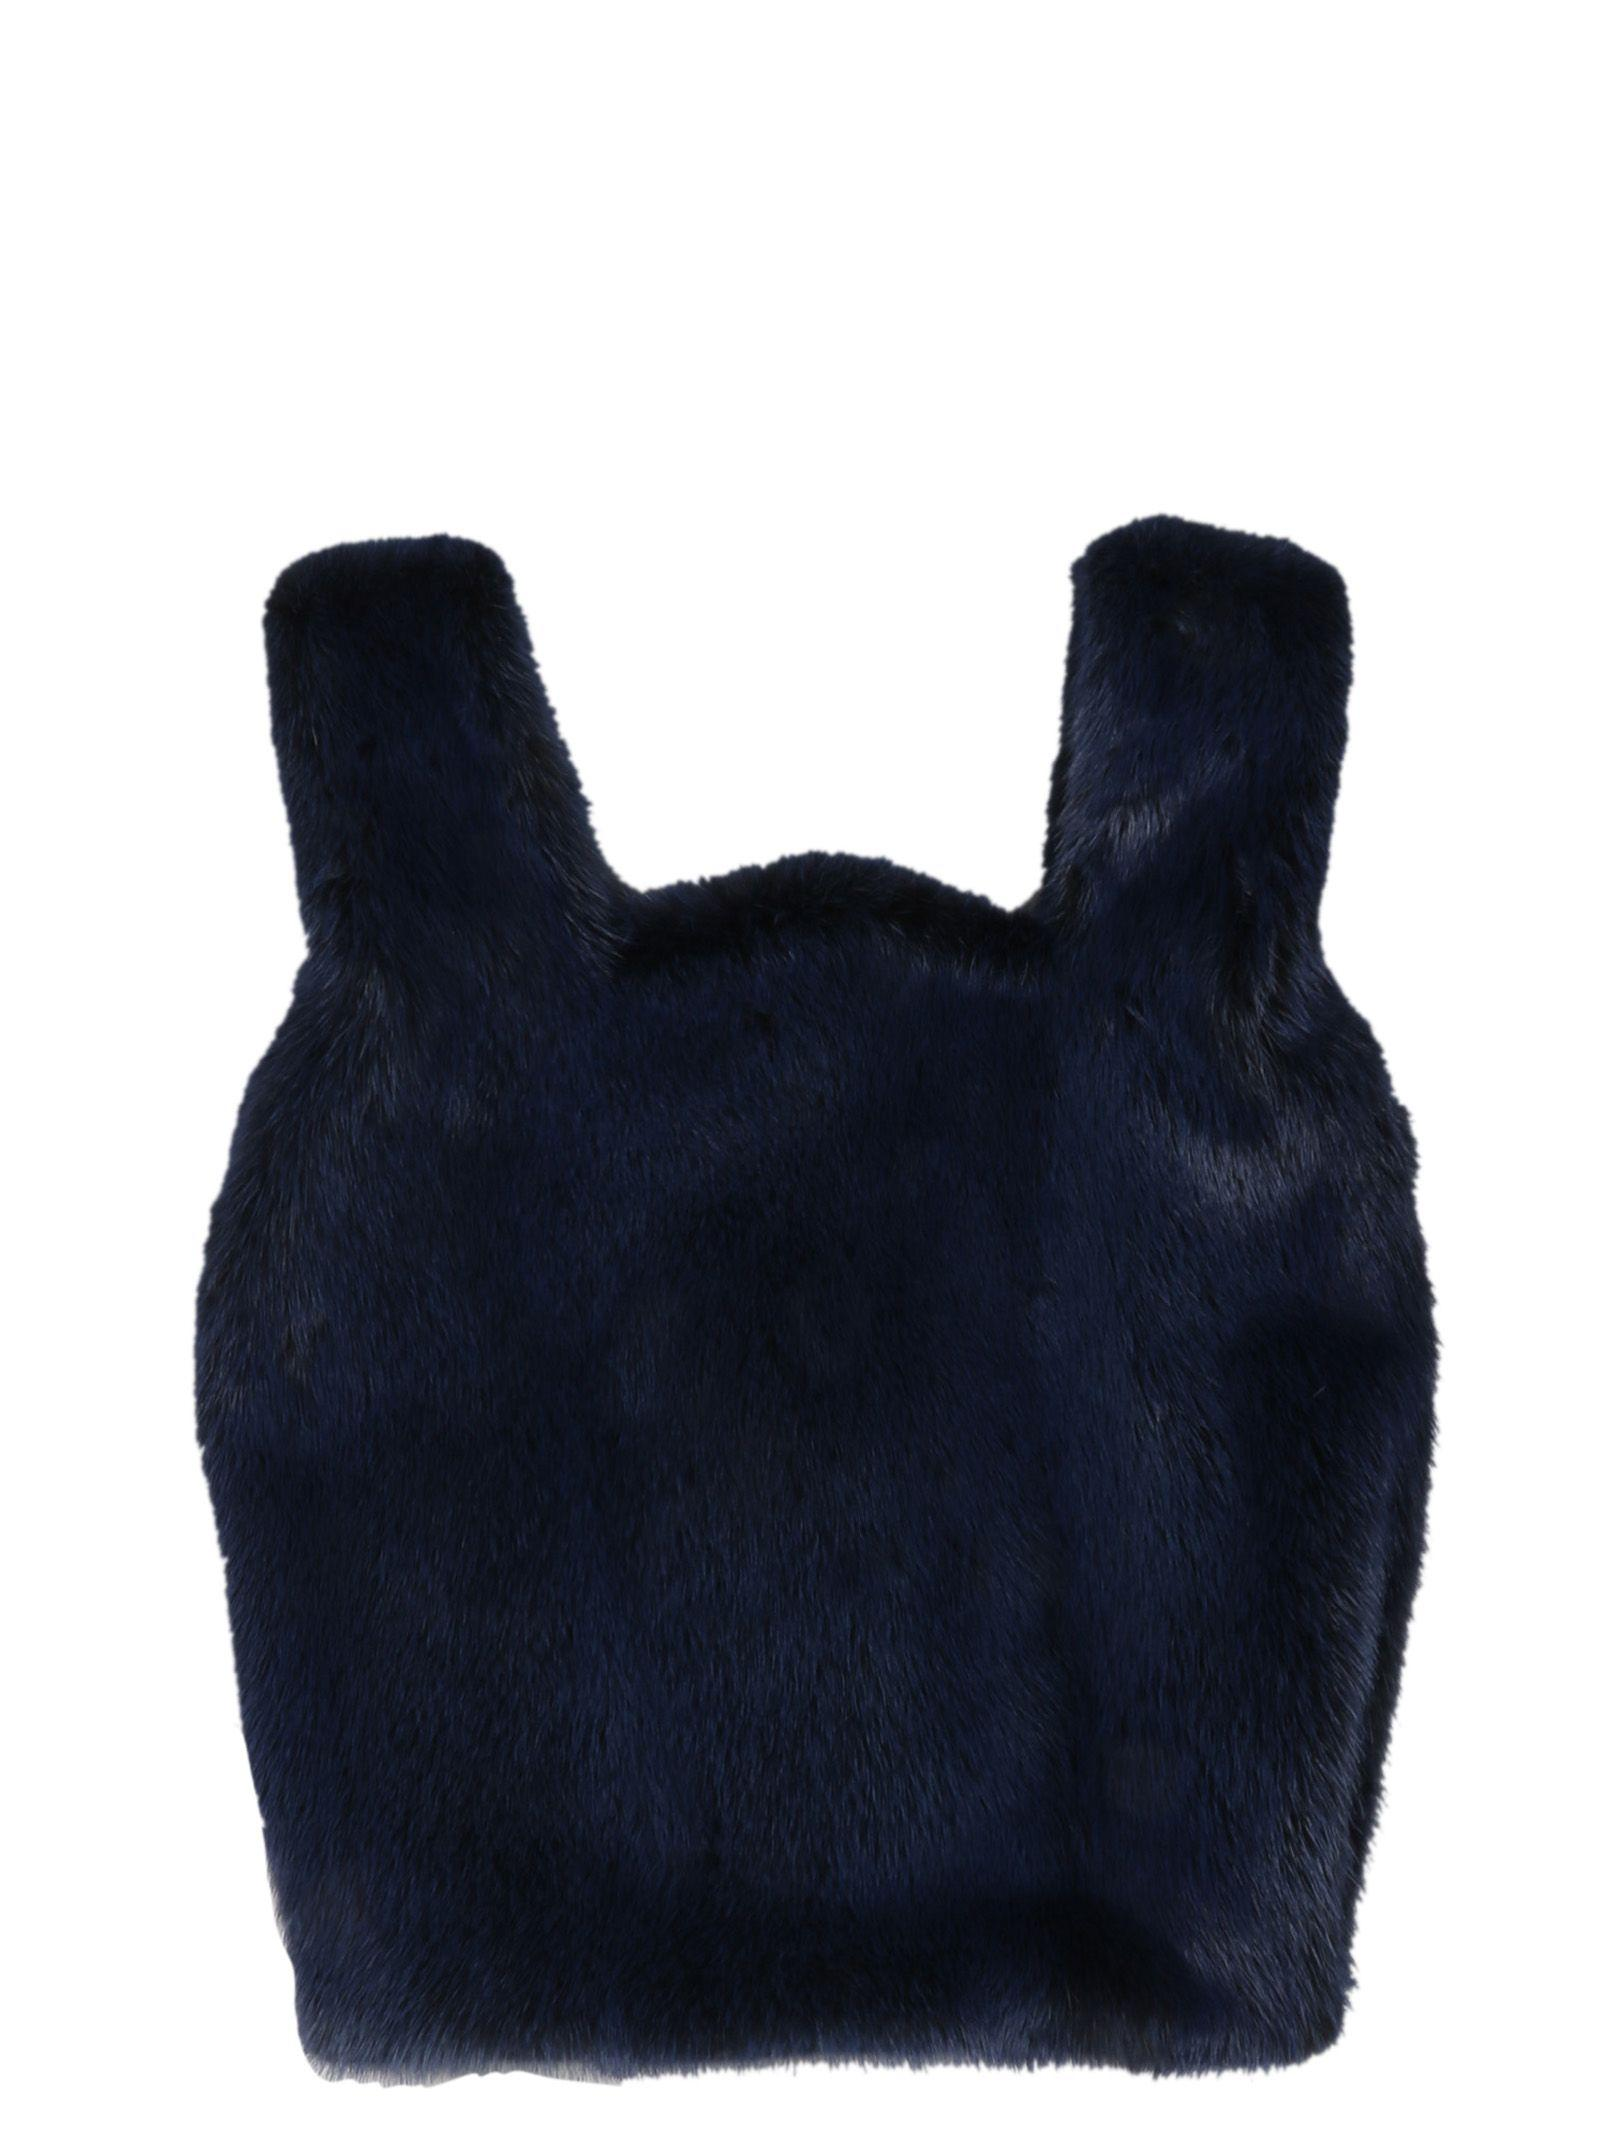 Simonetta Ravizza Furrissima Tote In Royal Blue